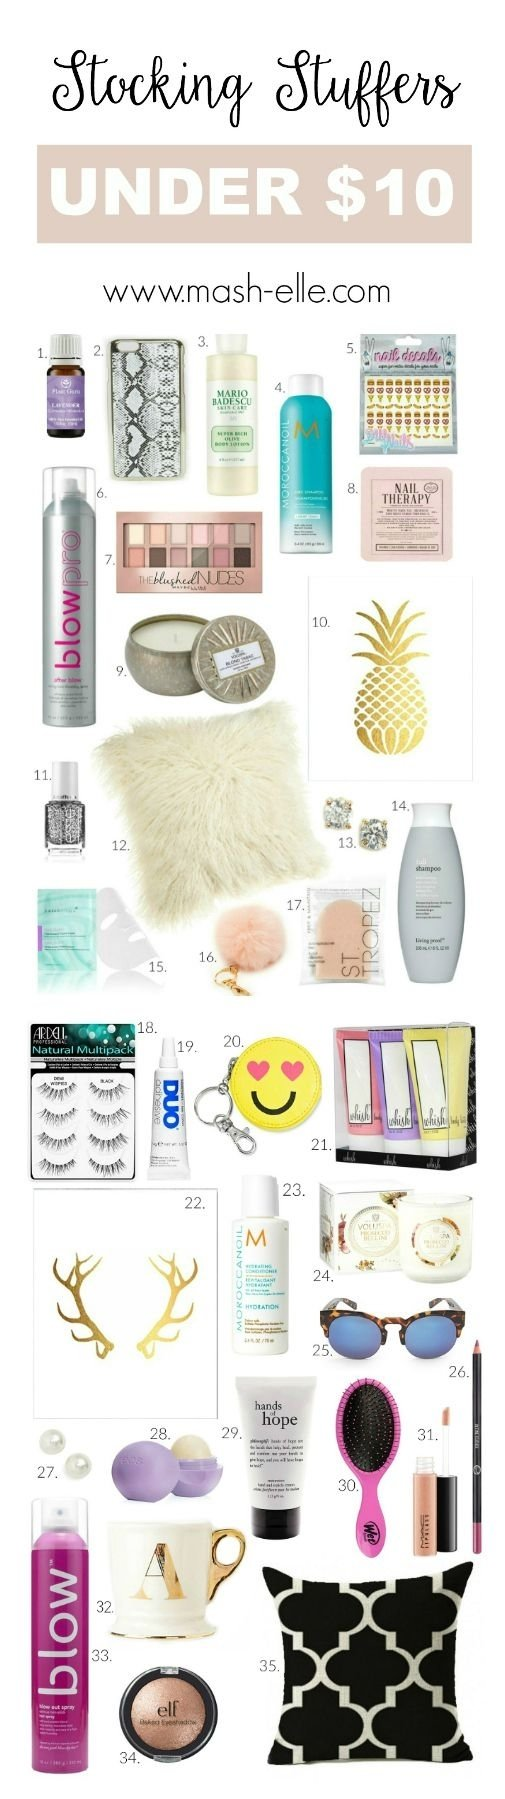 10 Elegant Gift Ideas For Female Coworkers 36 best gift ideas images on pinterest gift ideas christmas 2020